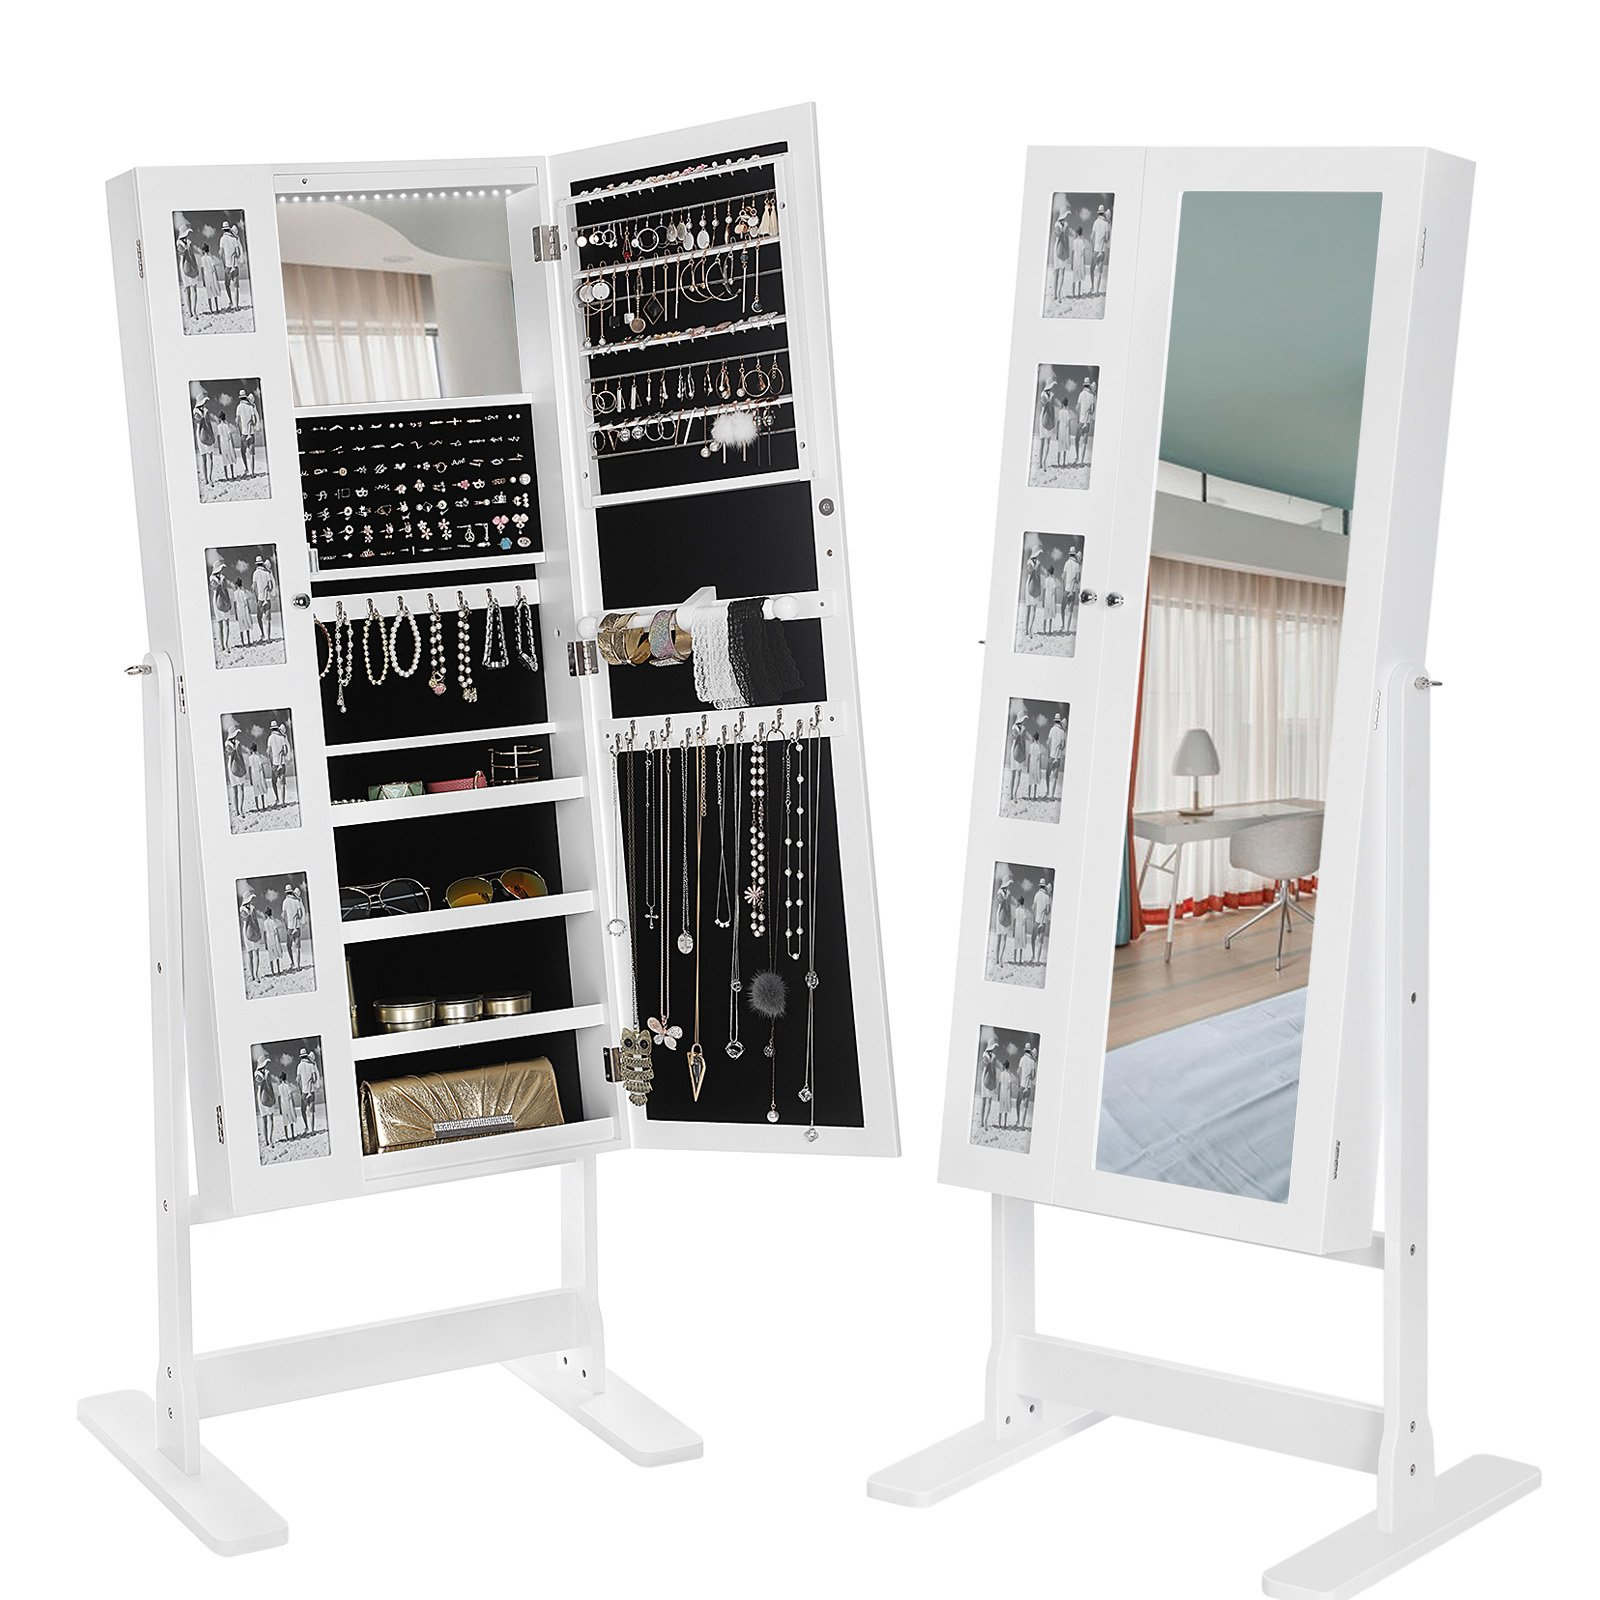 SONGMICS 18 LEDs Jewelry Cabinet Mirrored Standing Jewelry Armoire Organizer with 6 Photo Frames White UJJC92W